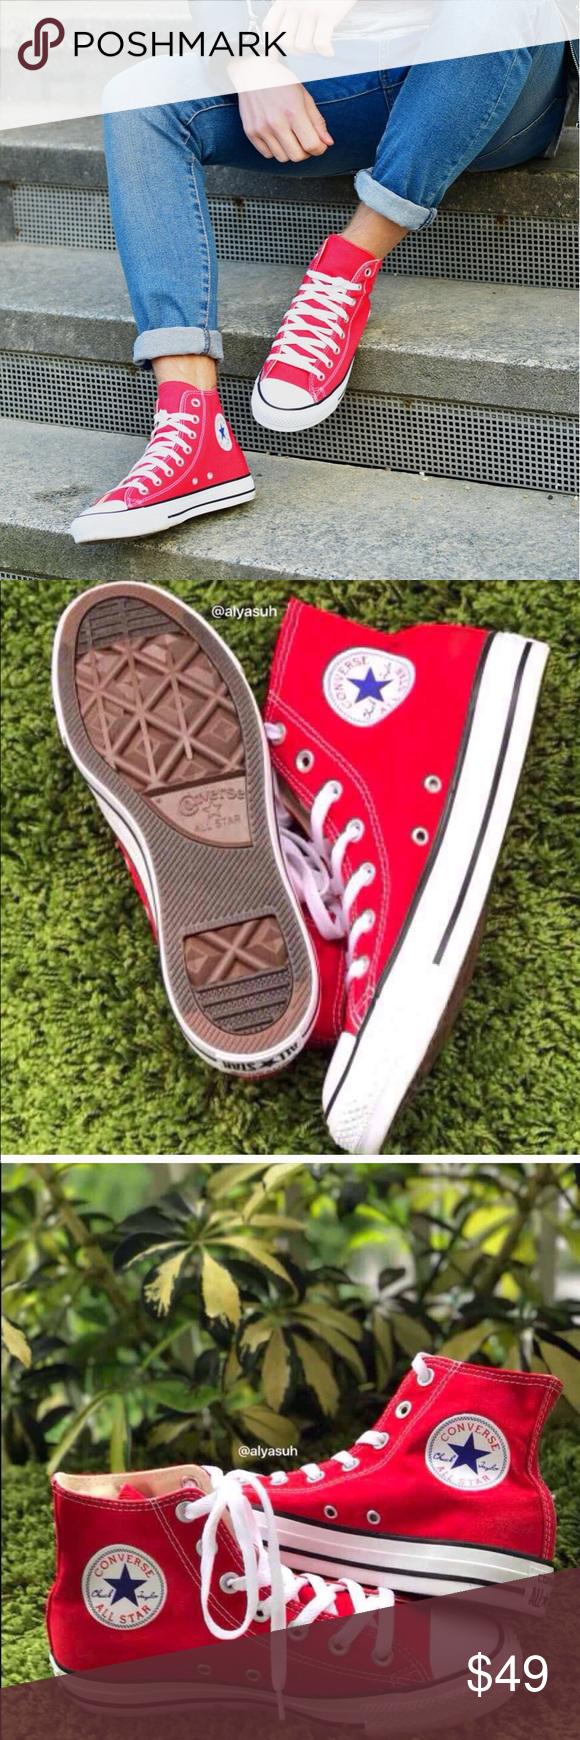 NWT Converse AdFabric AllStar Red HT M AUTHENTIC Brand new with box. Price  is firm 860c4651c